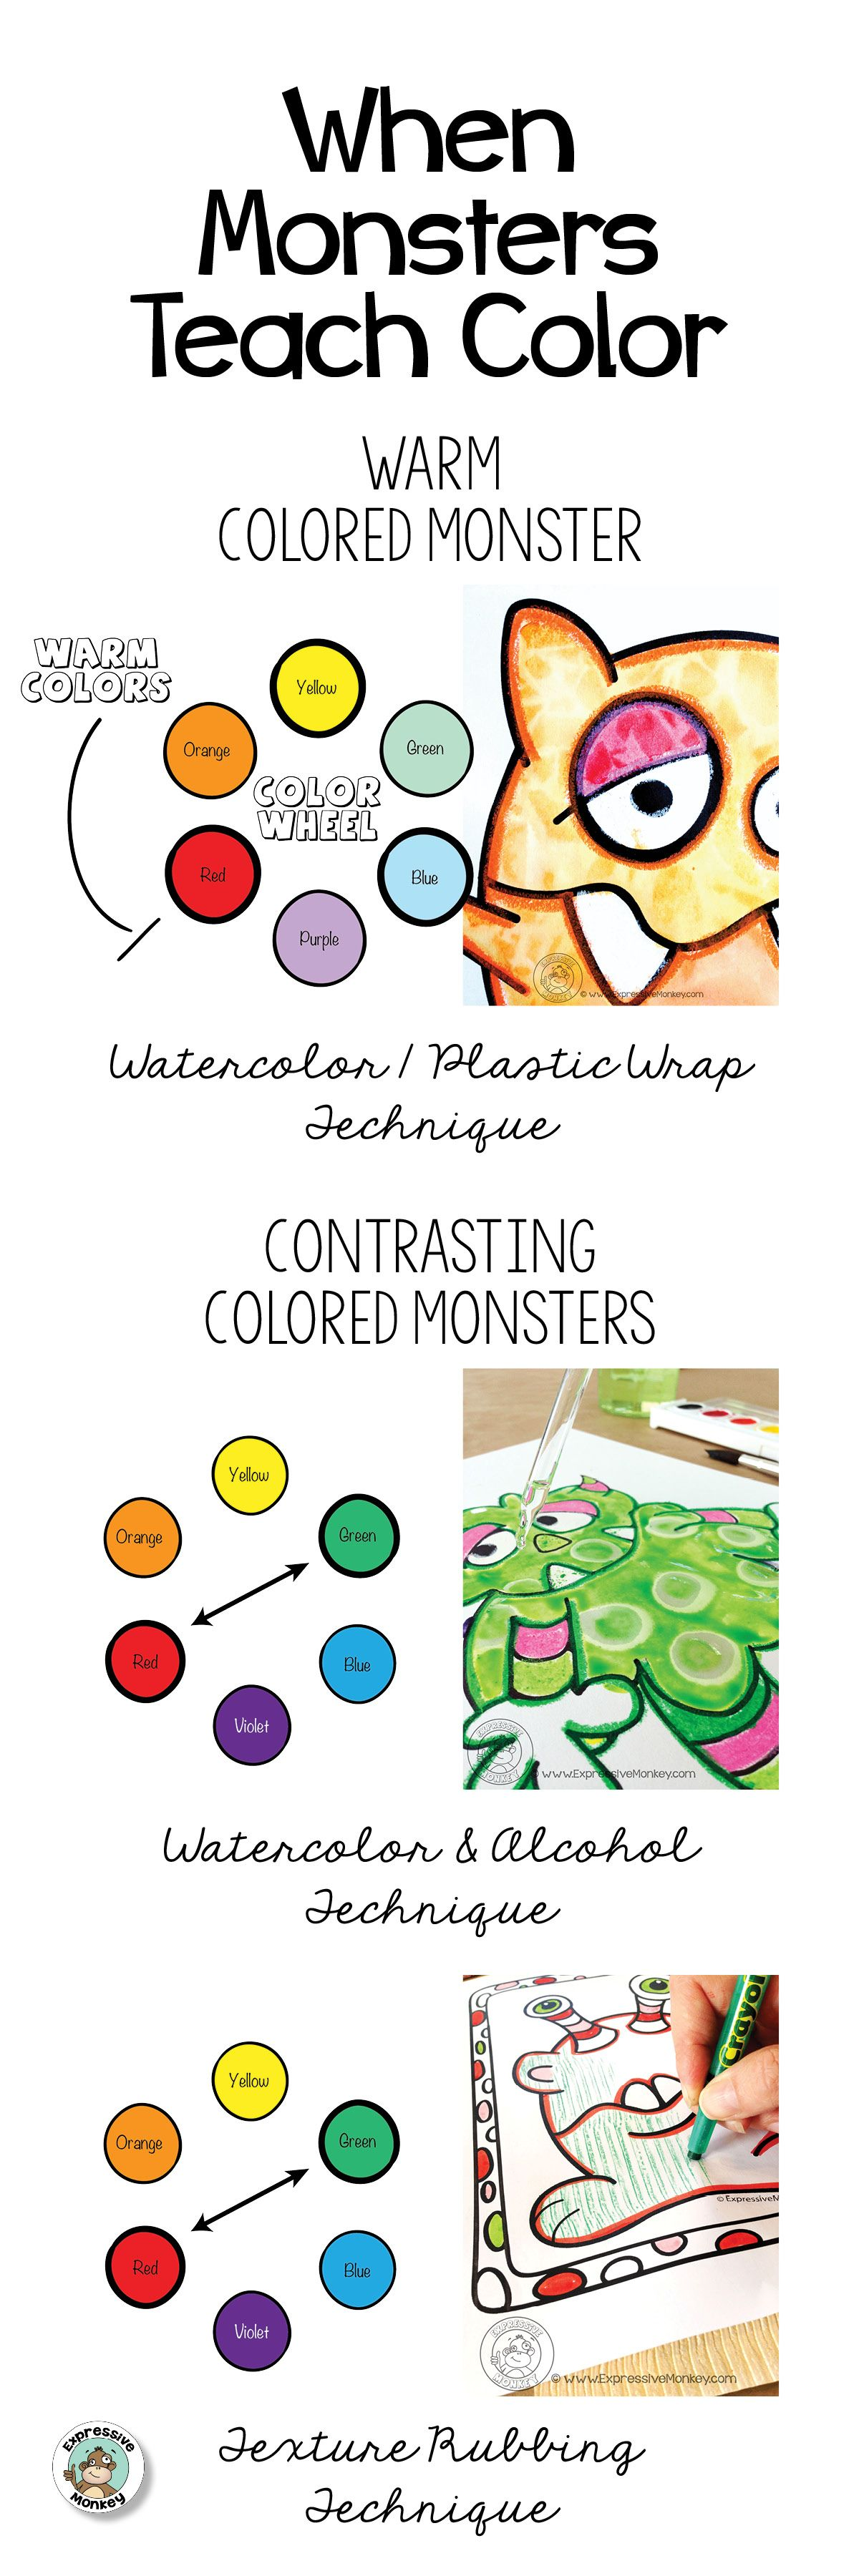 When Monsters Teach Color You Have An Engaging Lesson That